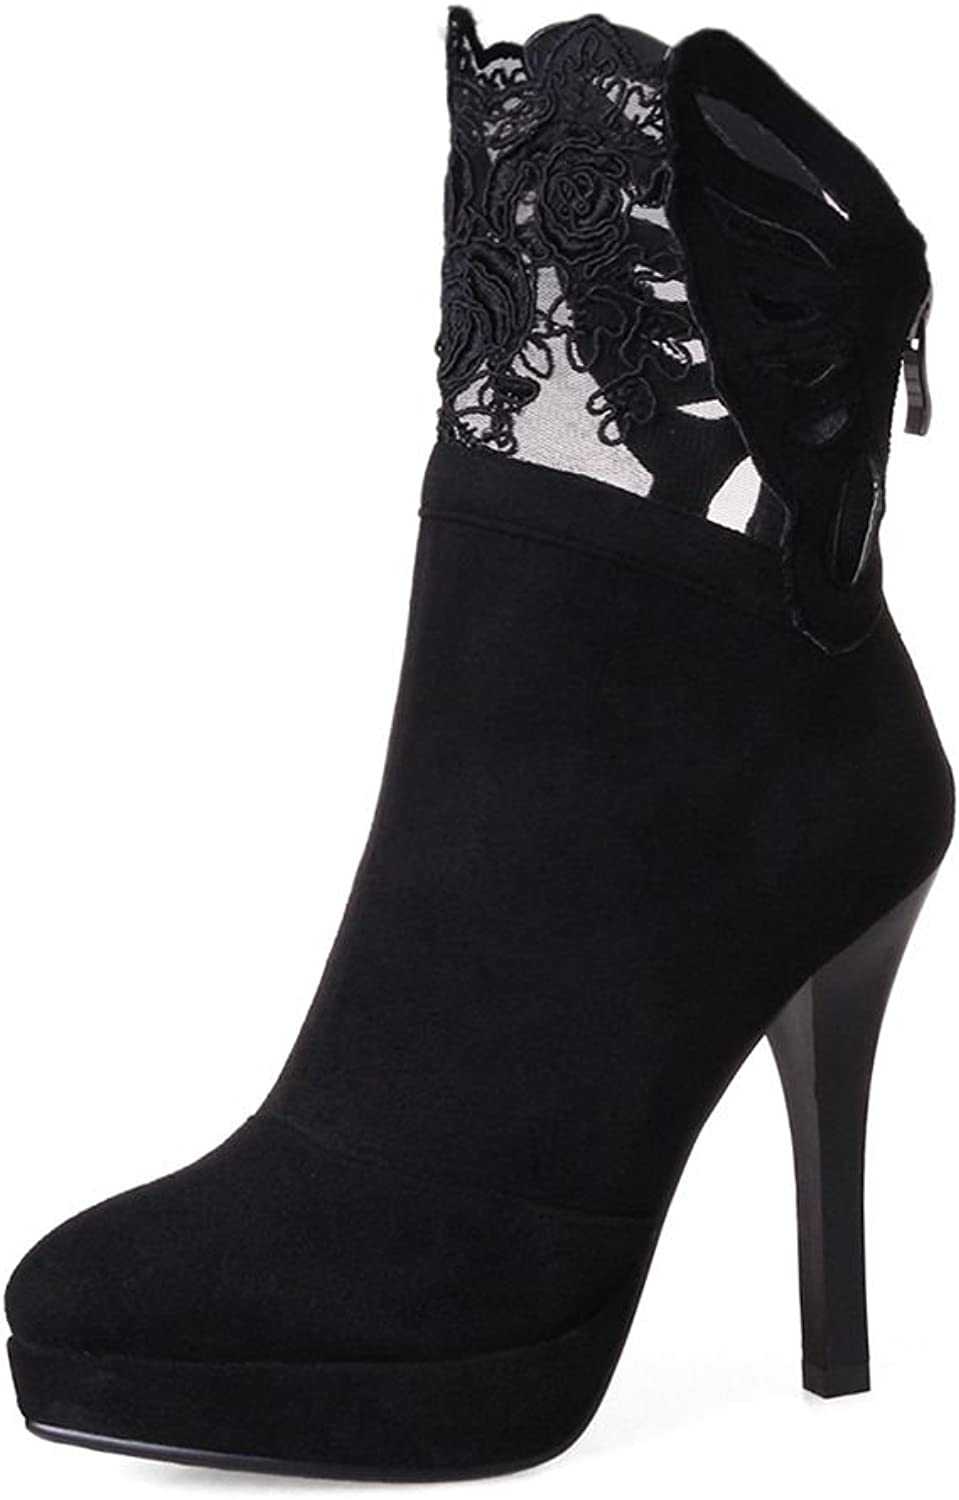 KingRover Women's Platform Thin High Heel Lace Suede Boots